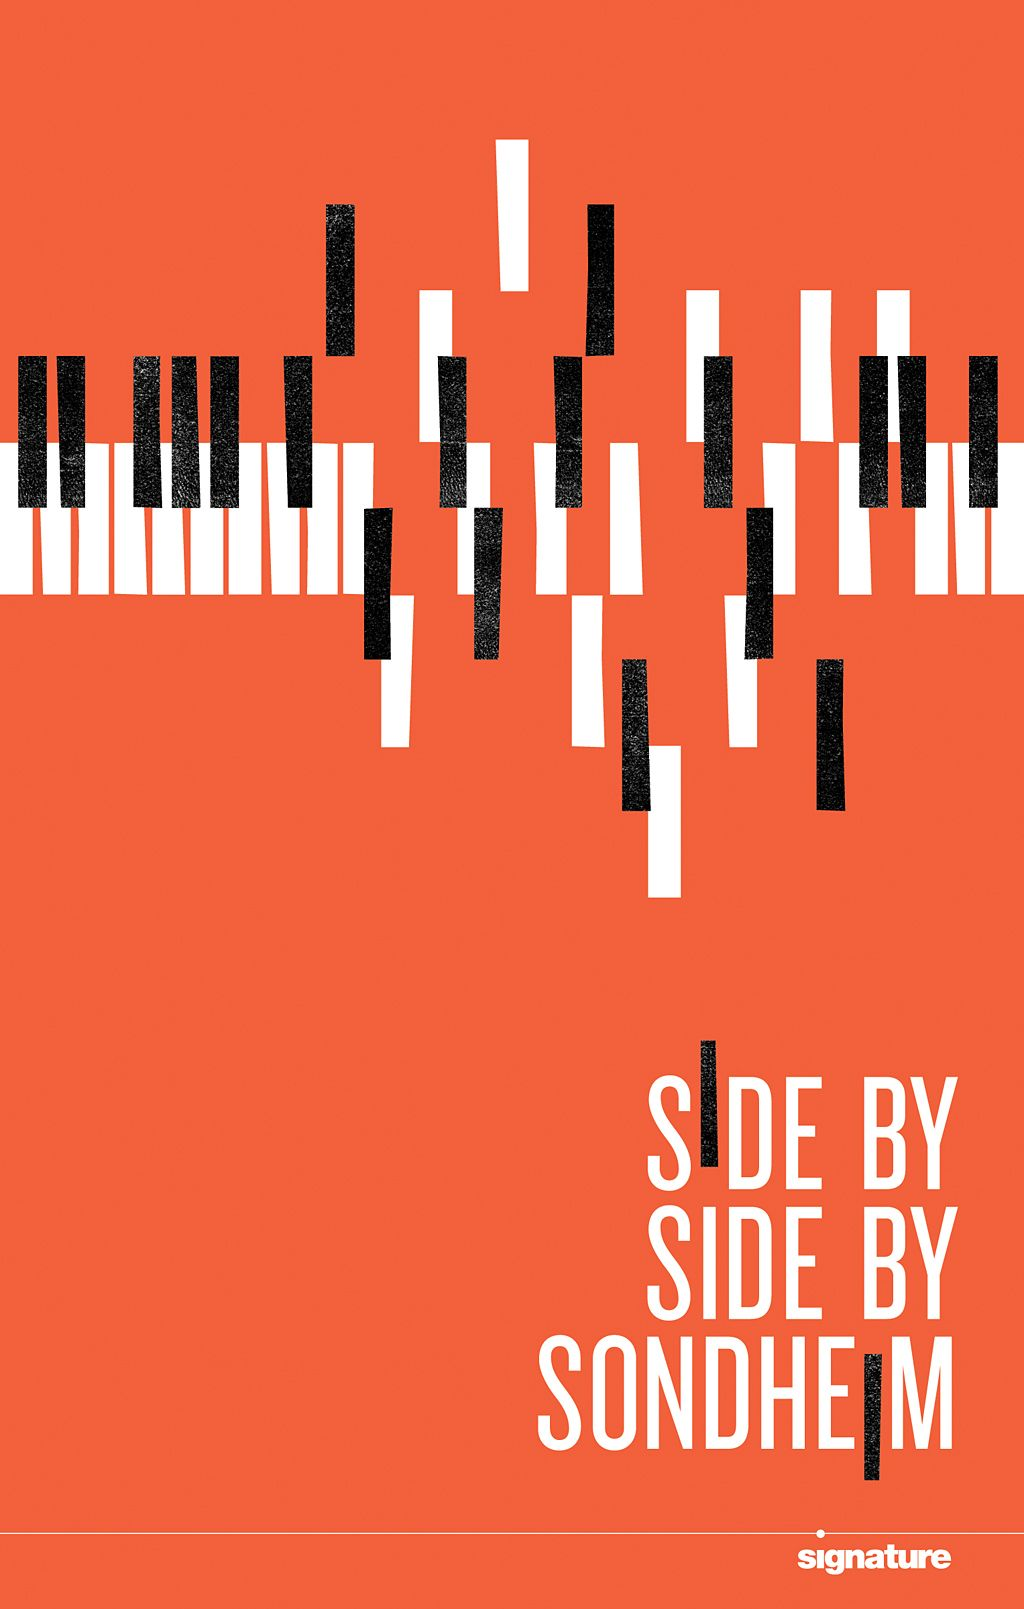 DESIGN ARMY Side By Sondheim Poster And Illustration C Design Army LLC